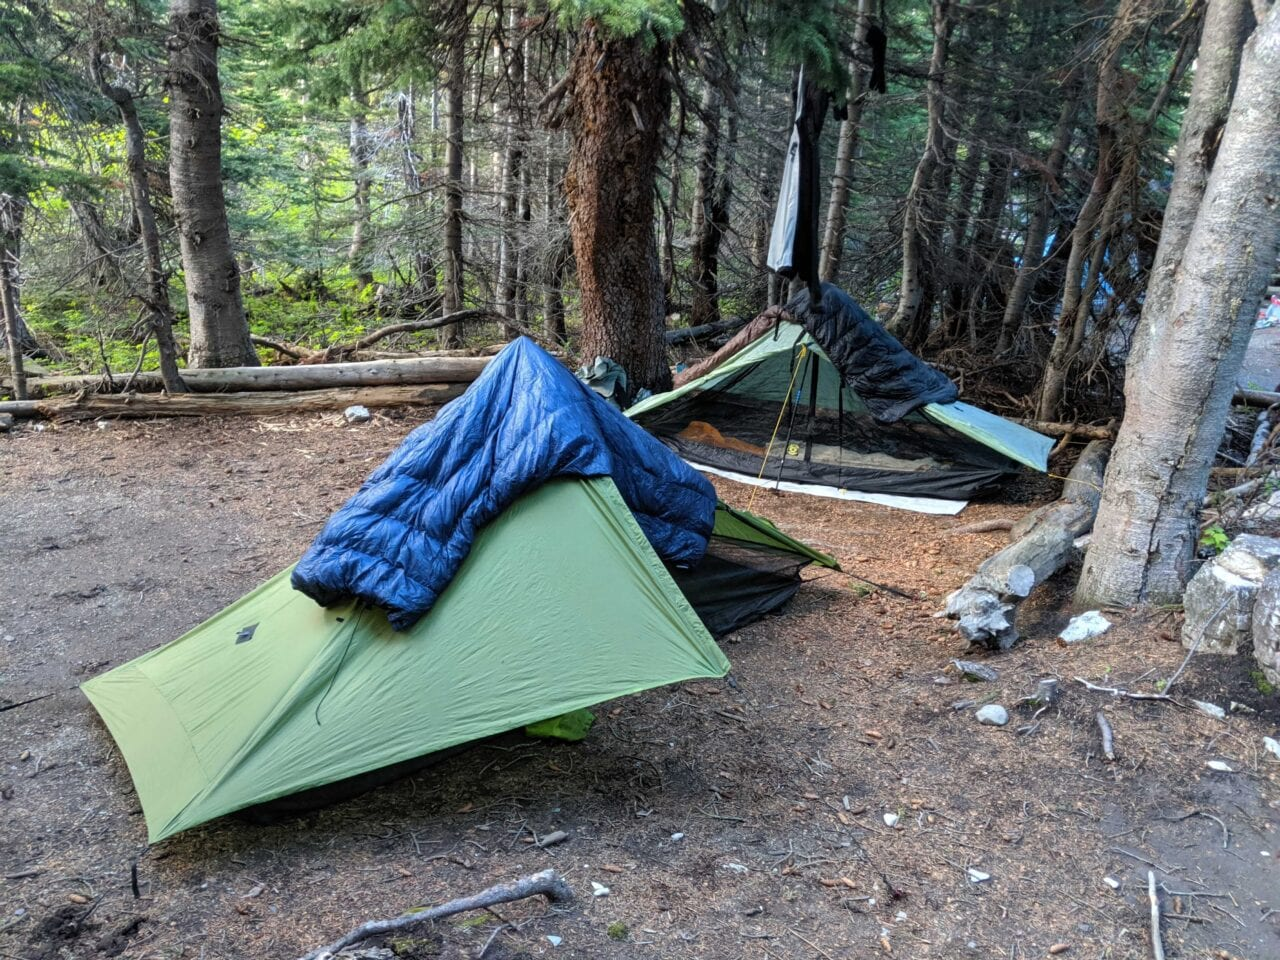 Two tents set up on a campsite in Glacier National Park, Montana